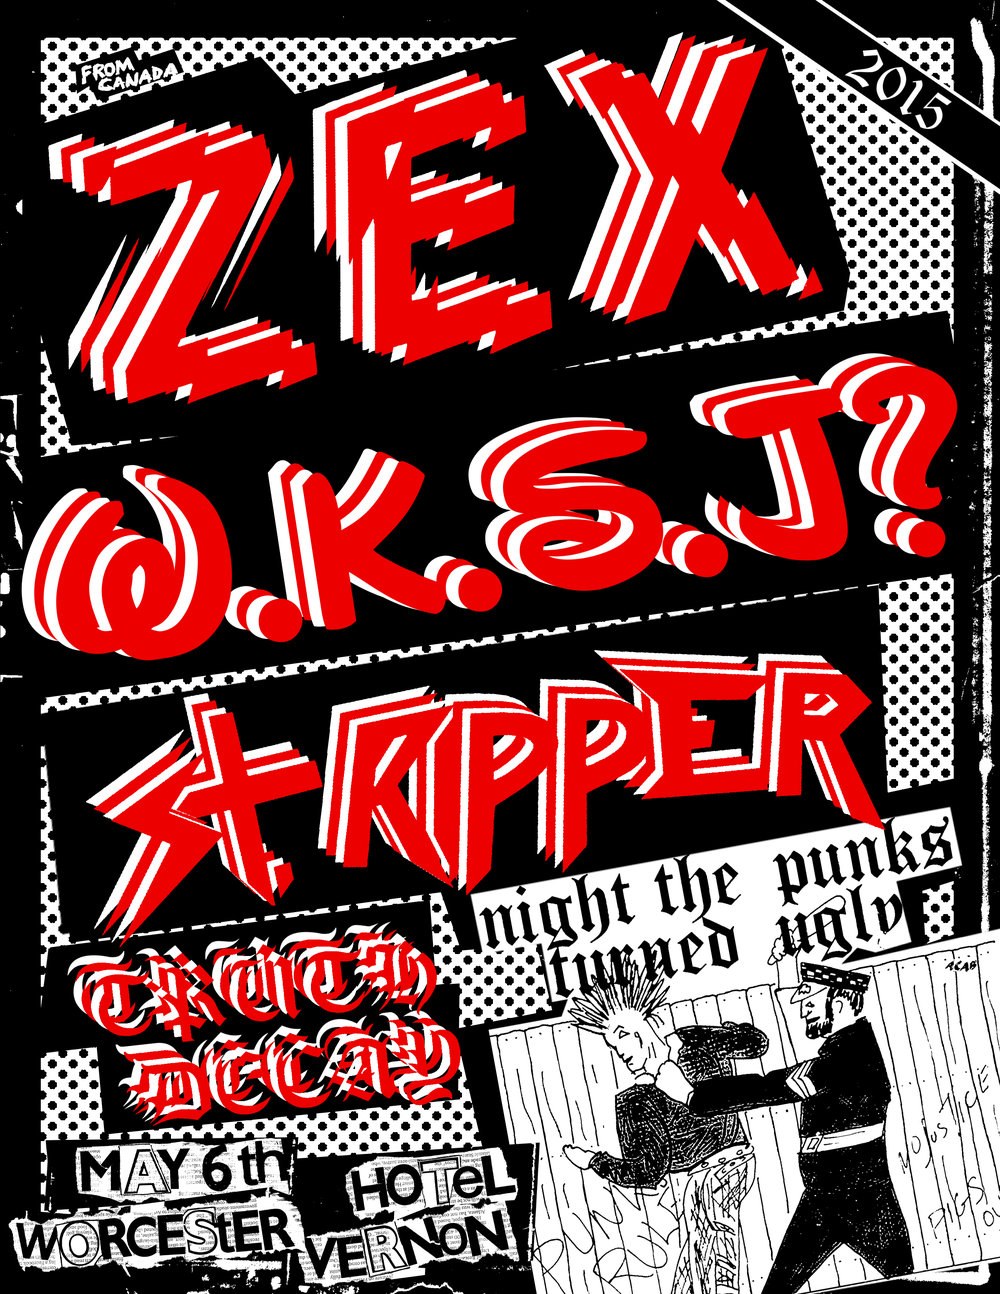 flyer-15.05.06-worcester-zex-red.jpg